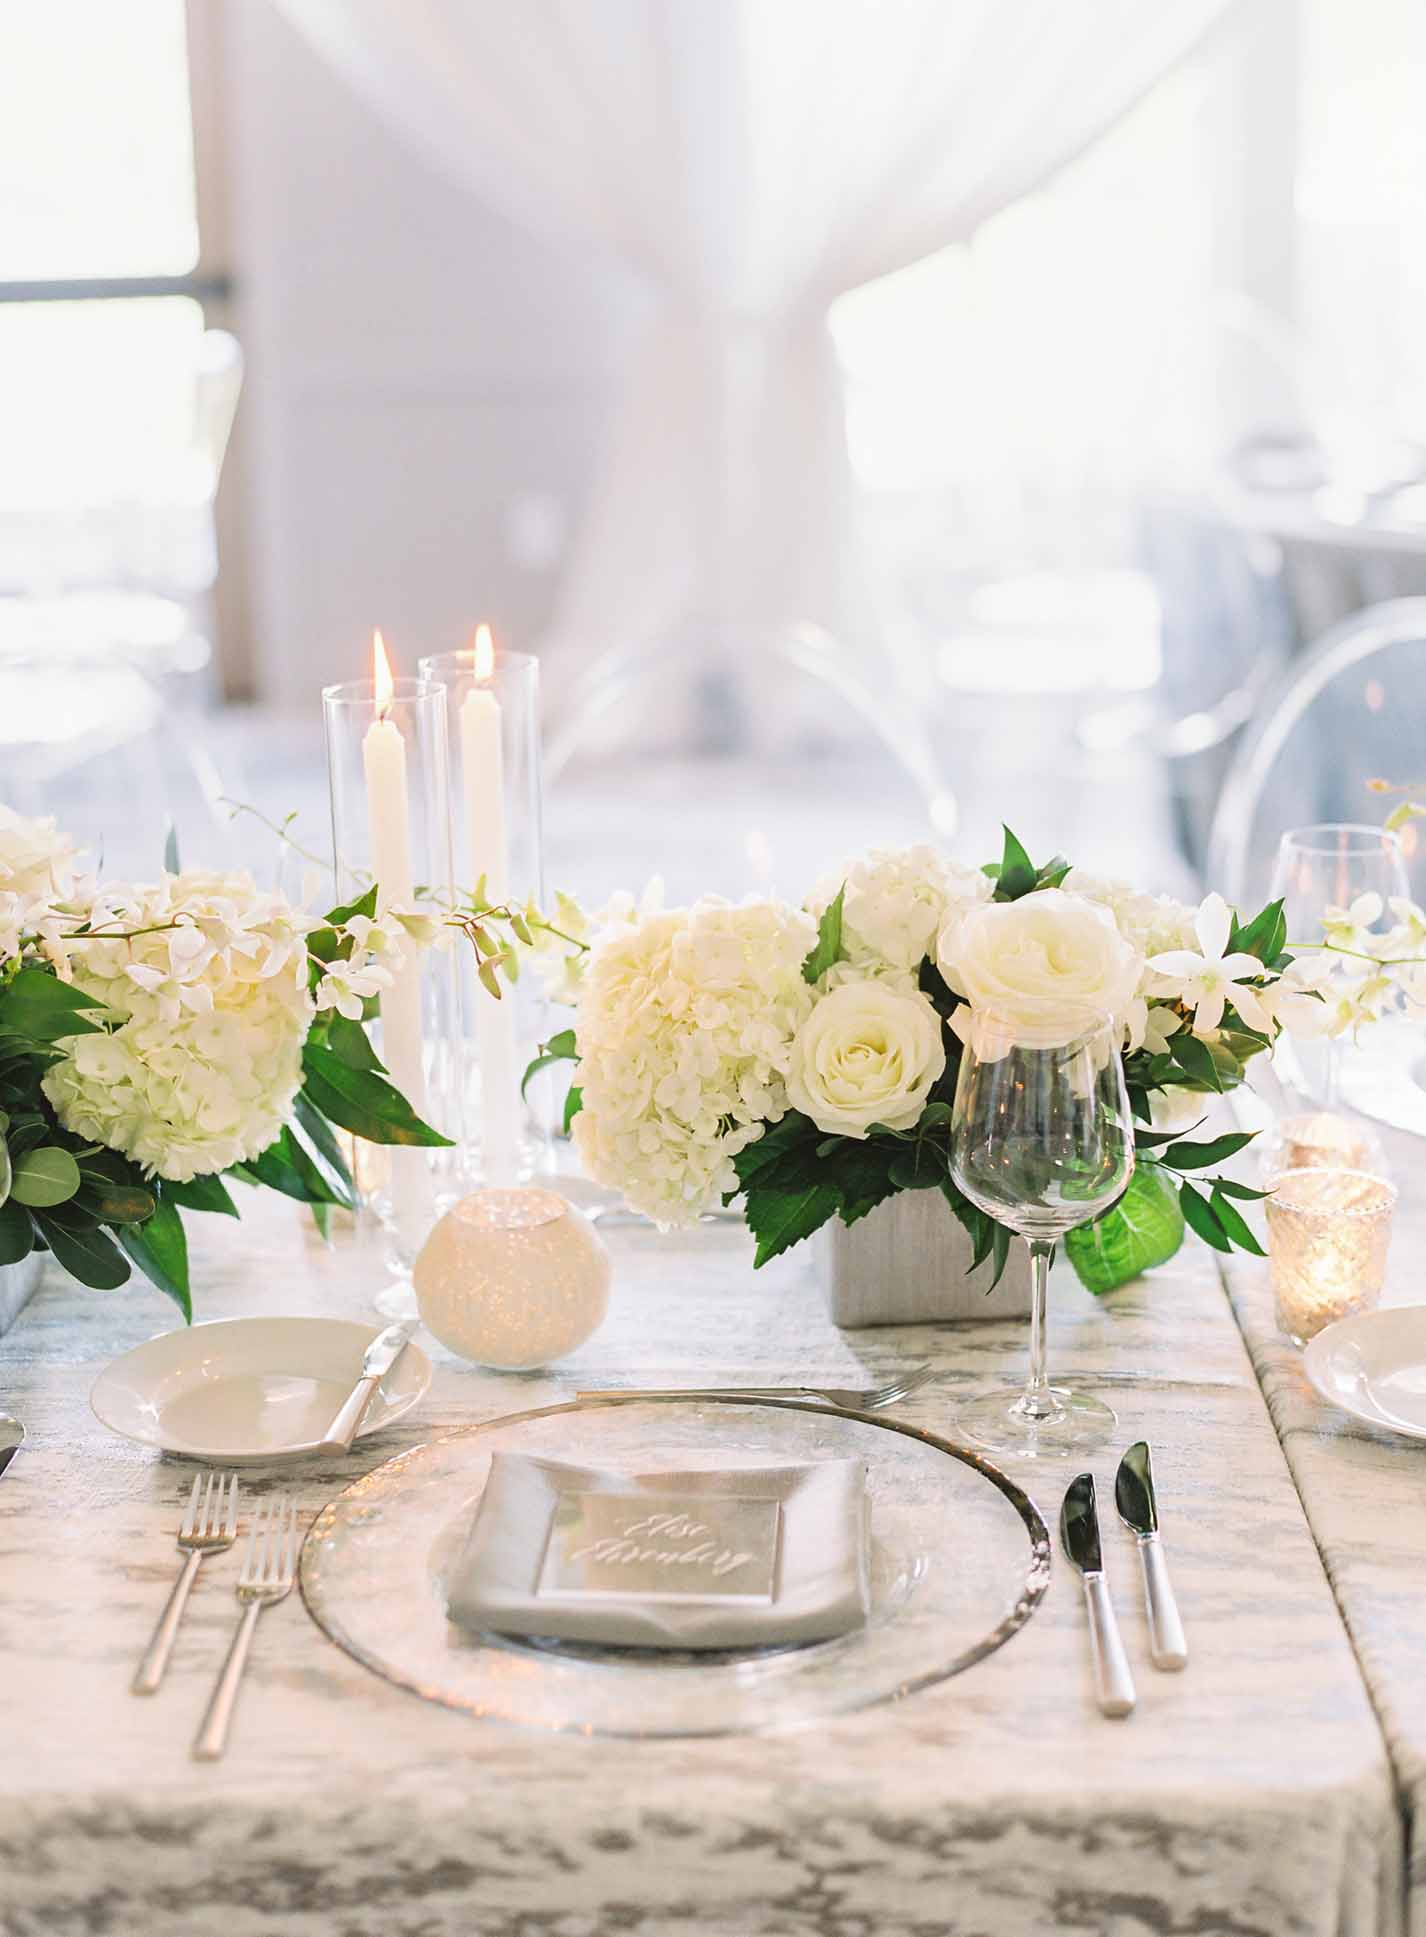 White centerpieces with greenery, in silver vases with taper candles, and silver rimmed charger plate